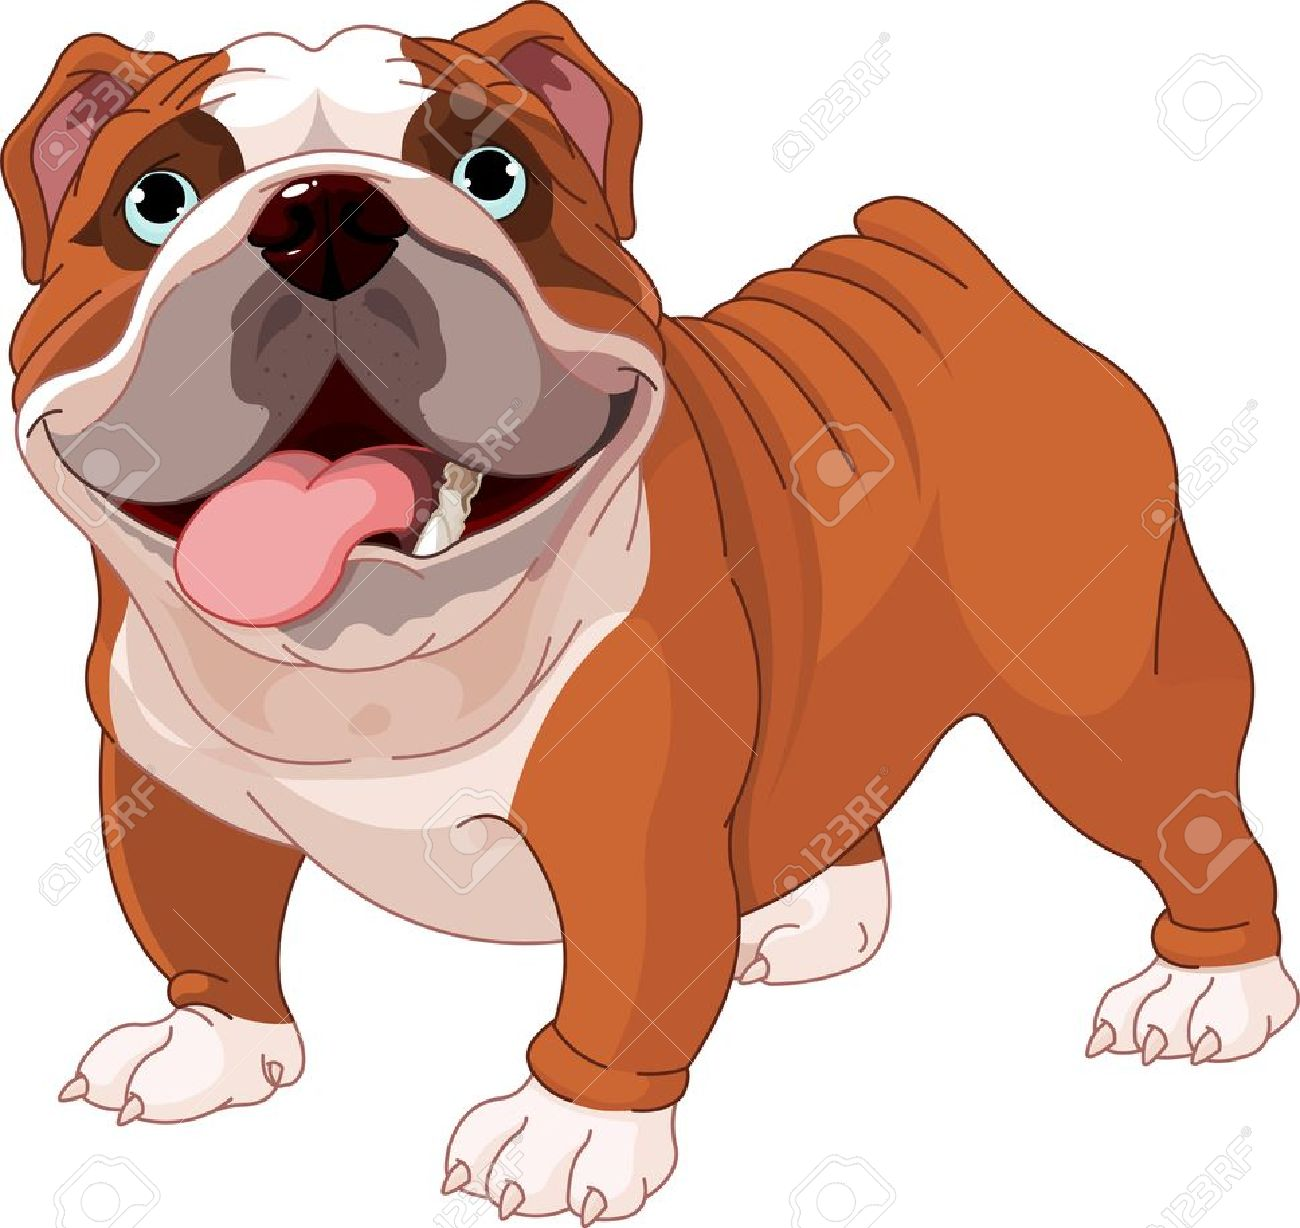 English Bulldog clipart #8, Download drawings